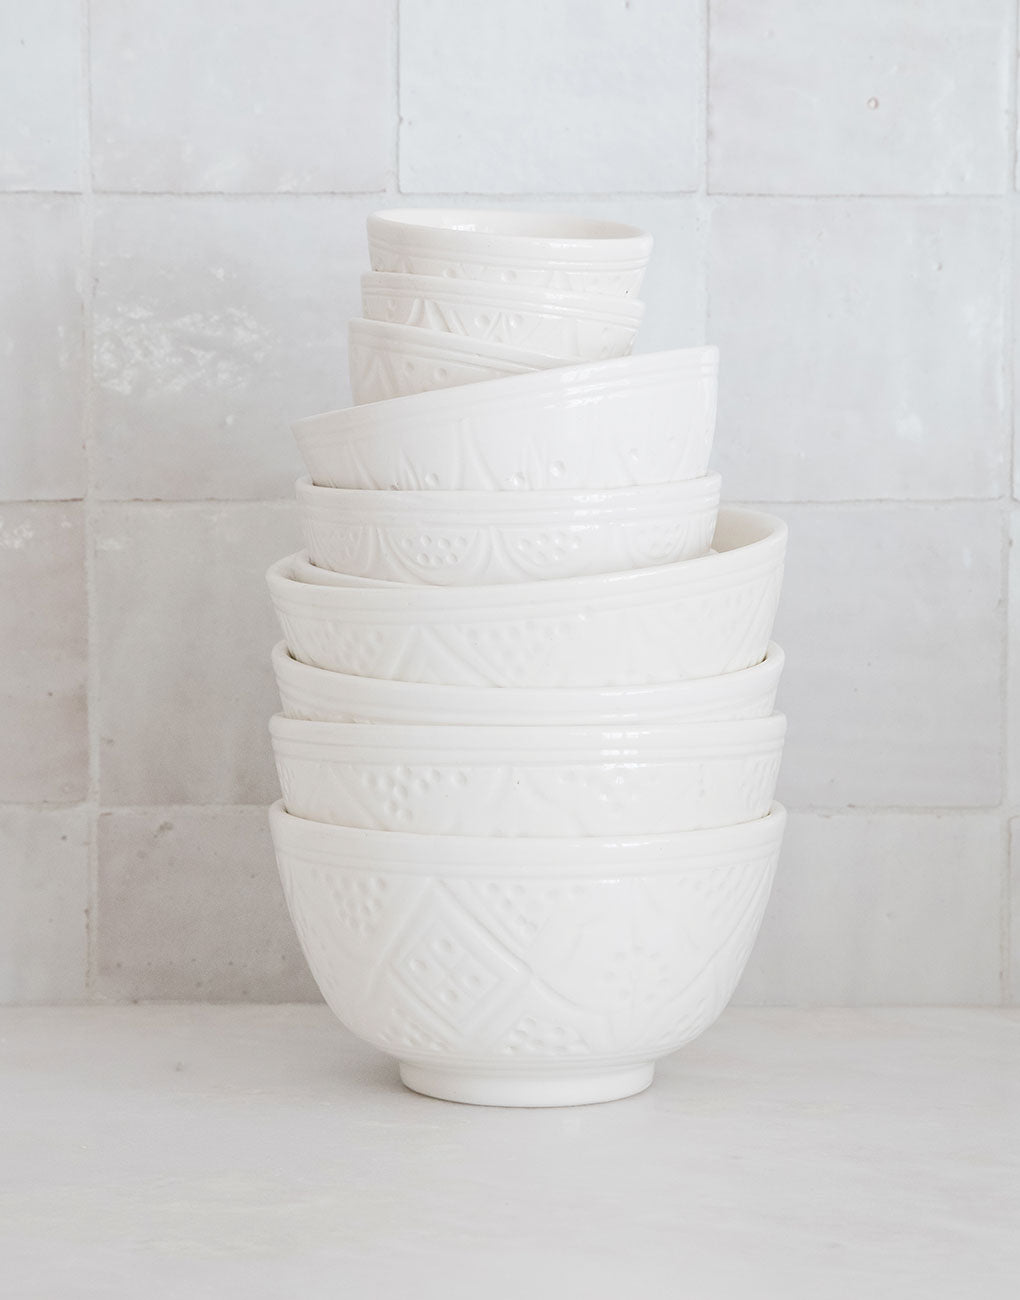 Ceramic Salad Bowl - White | The Little Market